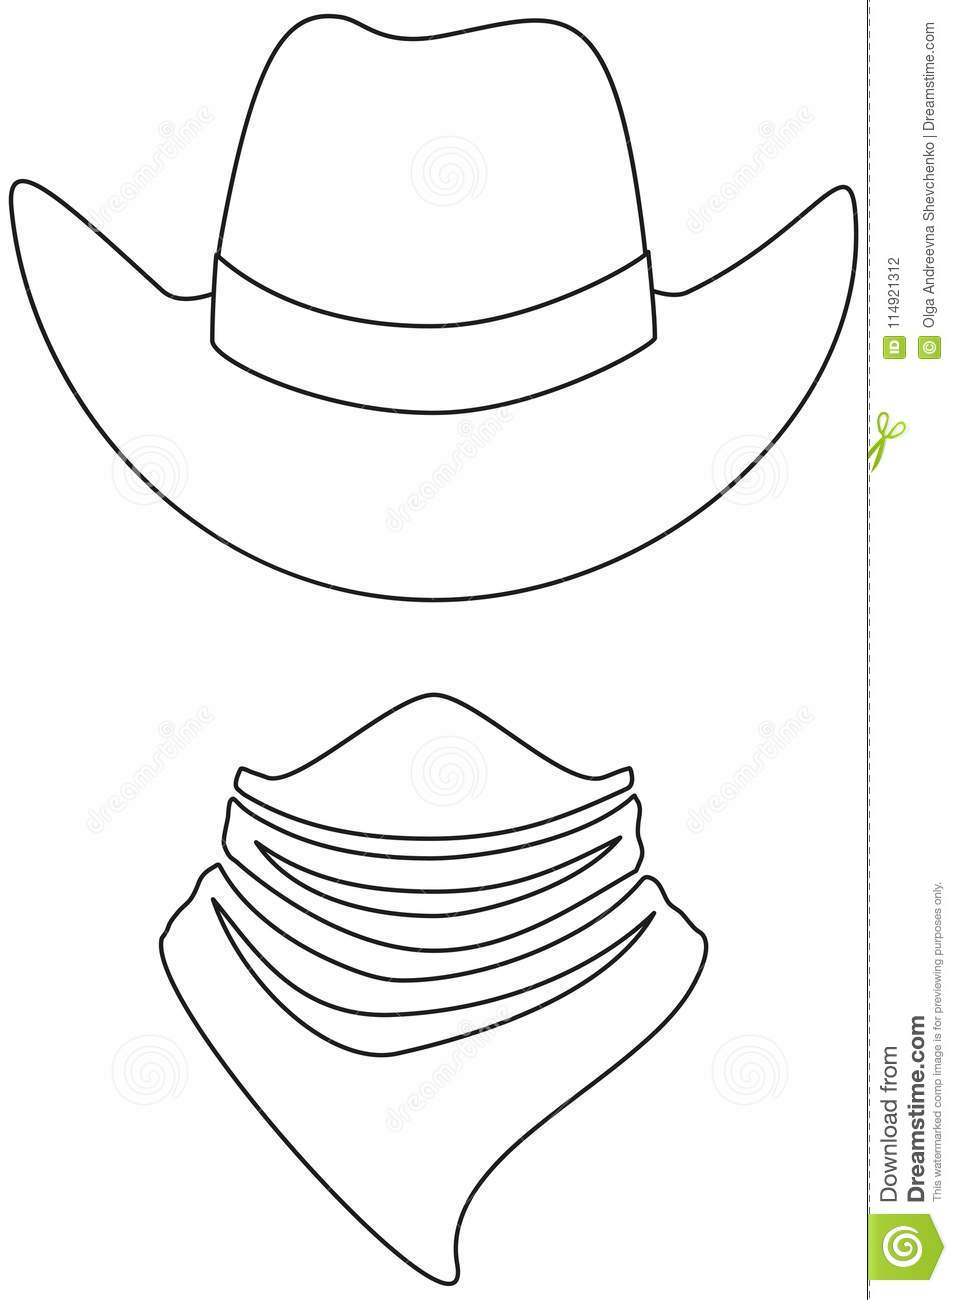 1504331a2d917 Line art black and white cowboy avatar set. Hat and bandana scarf. Wild  west vector illustration for gift card certificate sticker